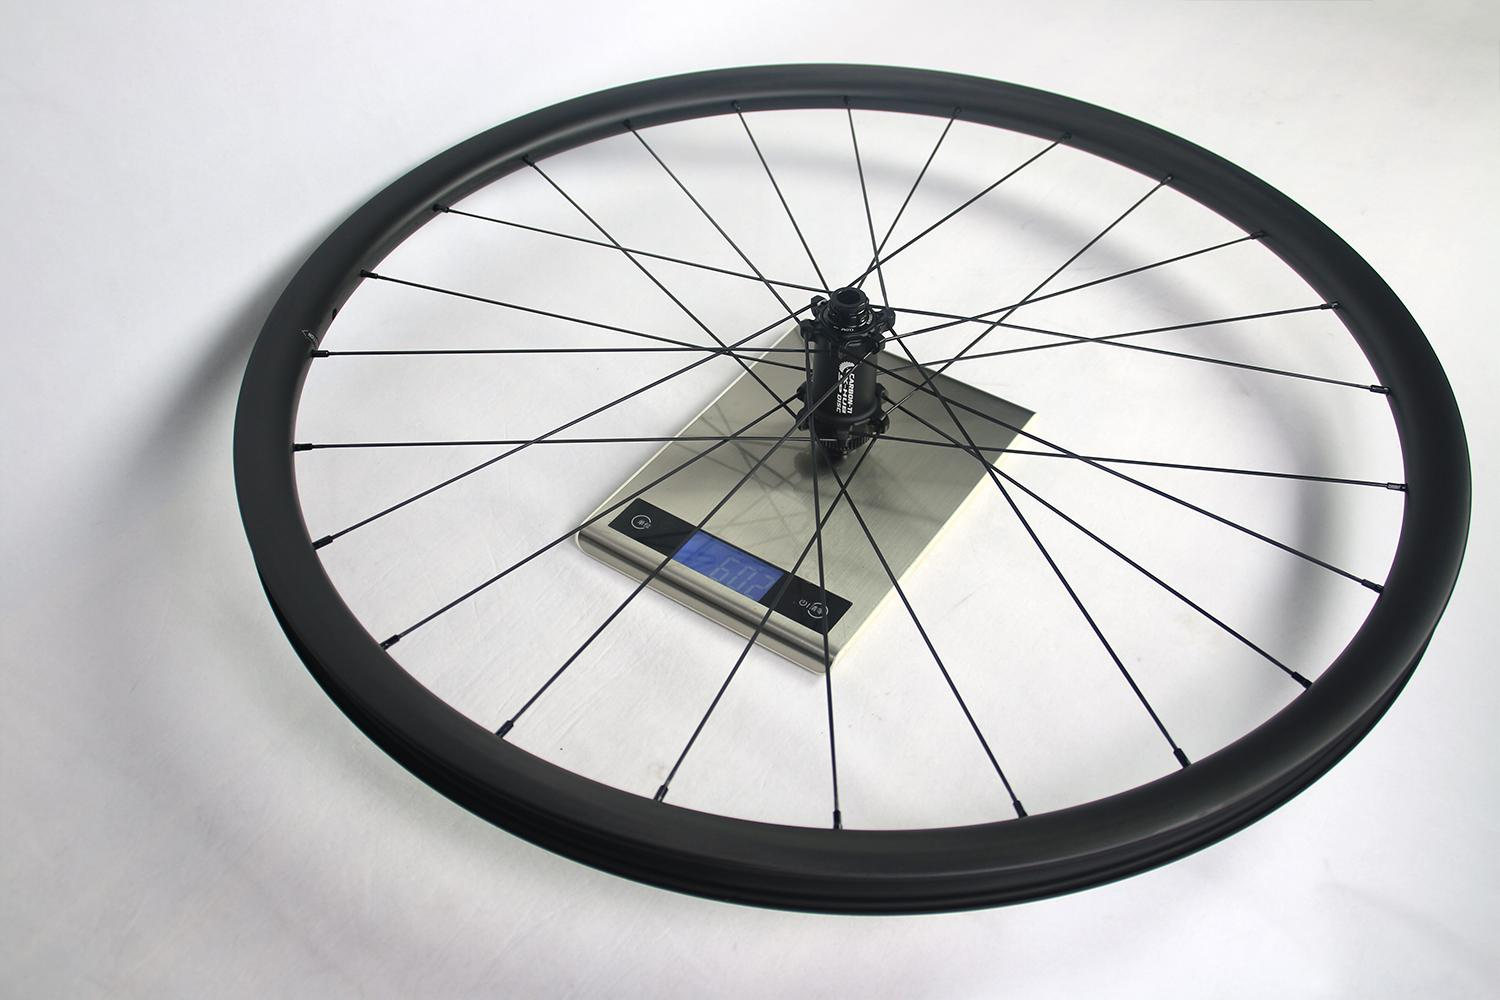 measured-weight-of-light-bicycle-ar28-front-wheel-with-carbon-ti-x-hub